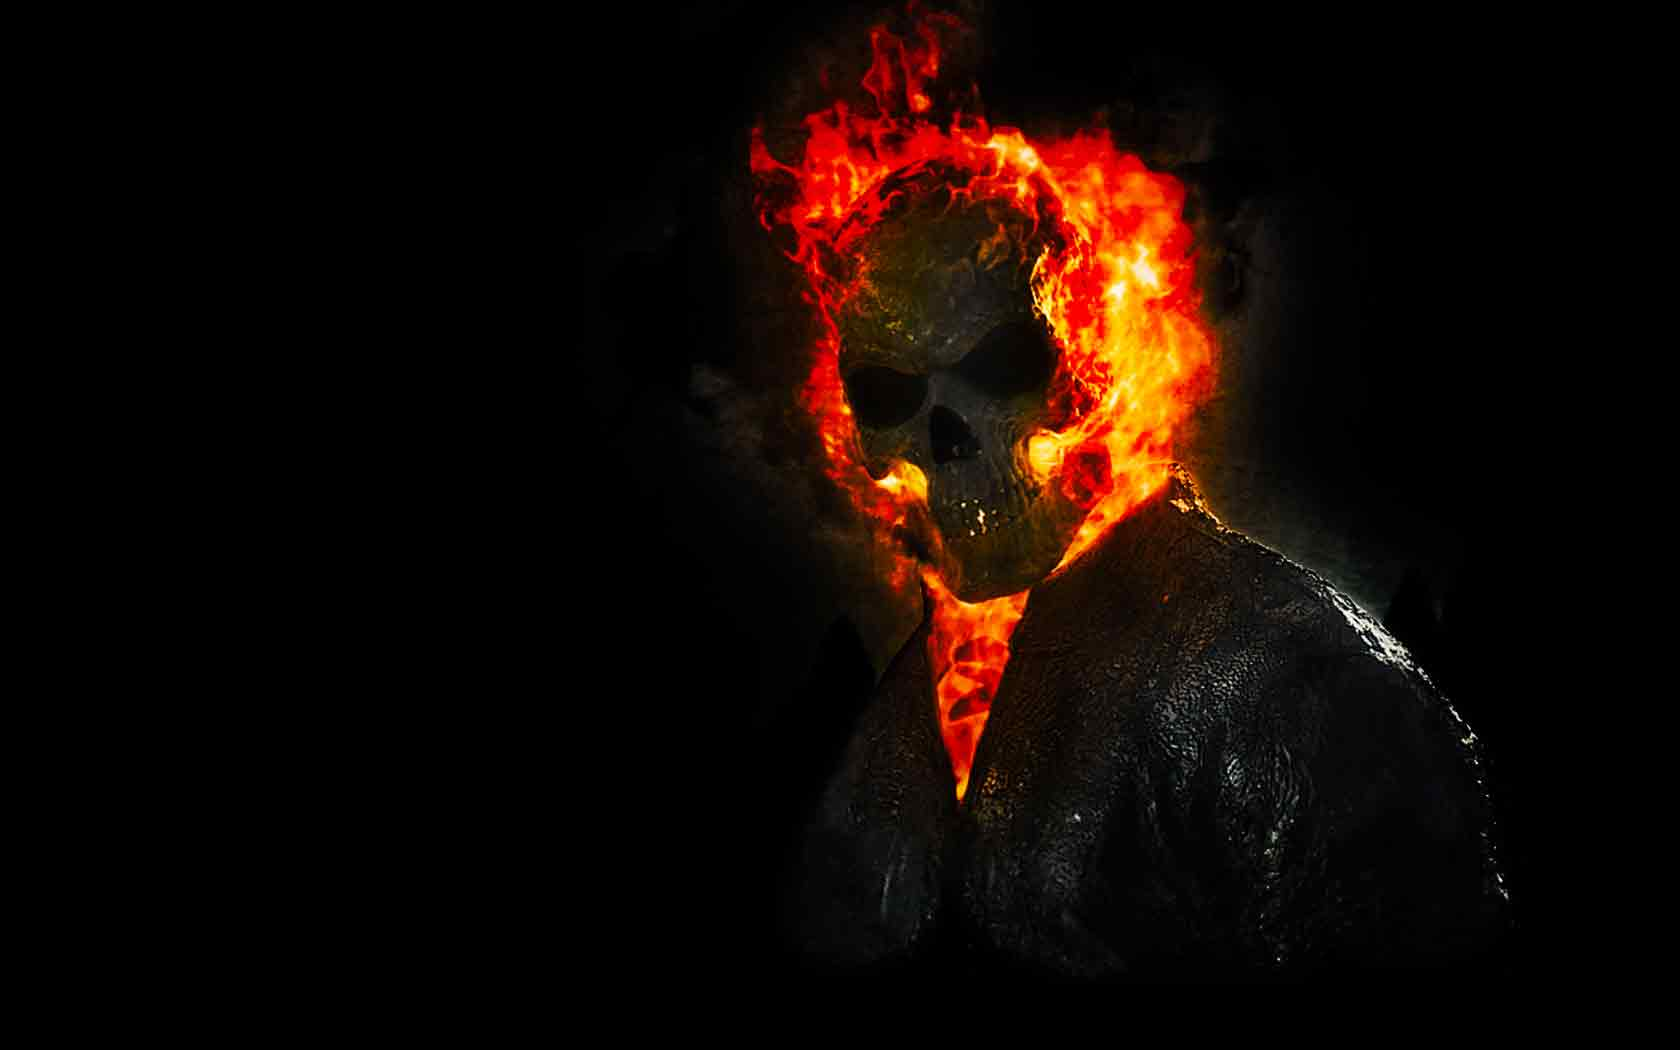 Photos ghost rider 2 wallpaper hd page 2 1680x1050